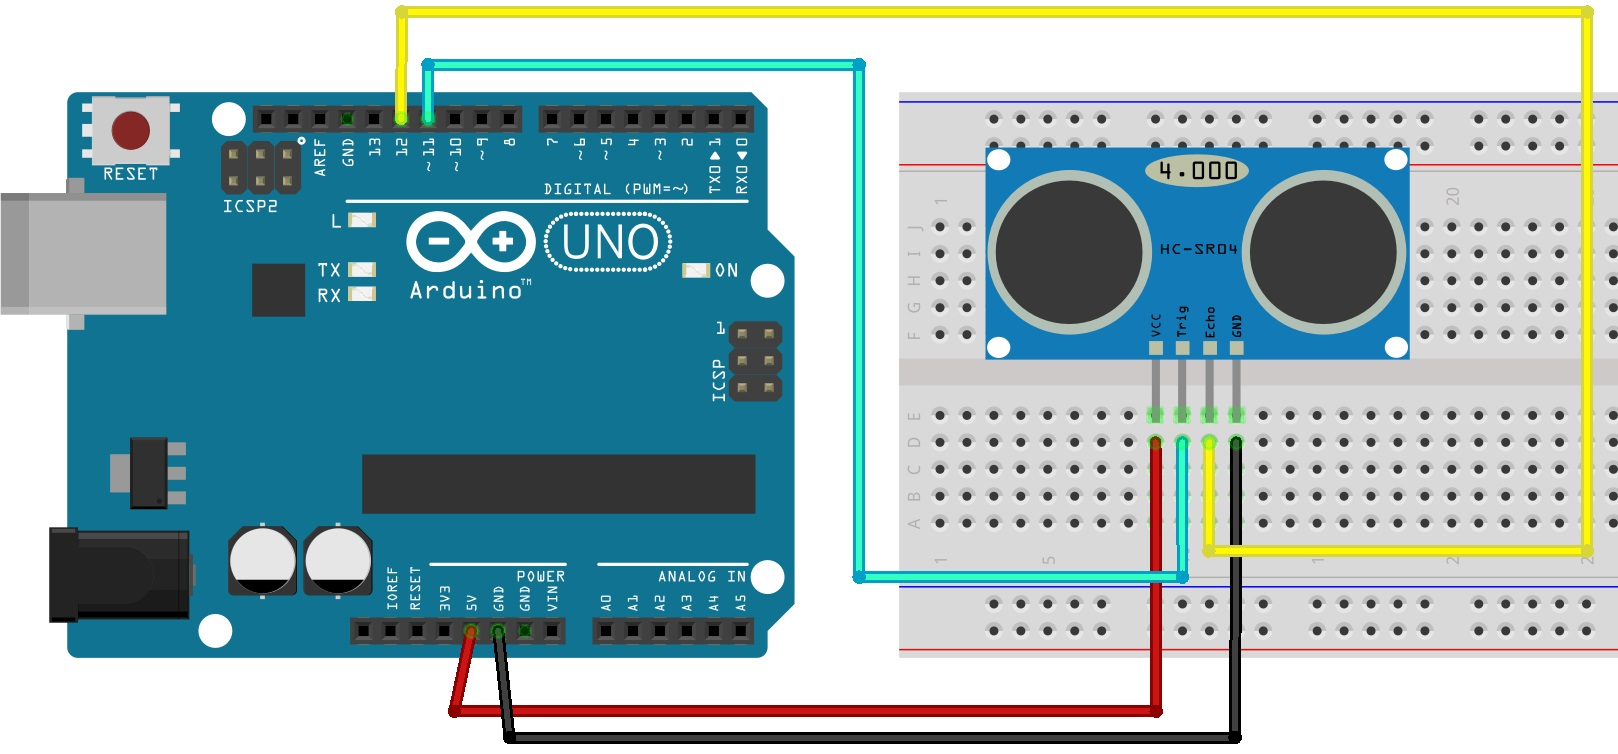 Complete Guide For Ultrasonic Sensor Hc Sr04 With Arduino Random Wiring Outdoor Motion Light Free Printable Schematic Schematics